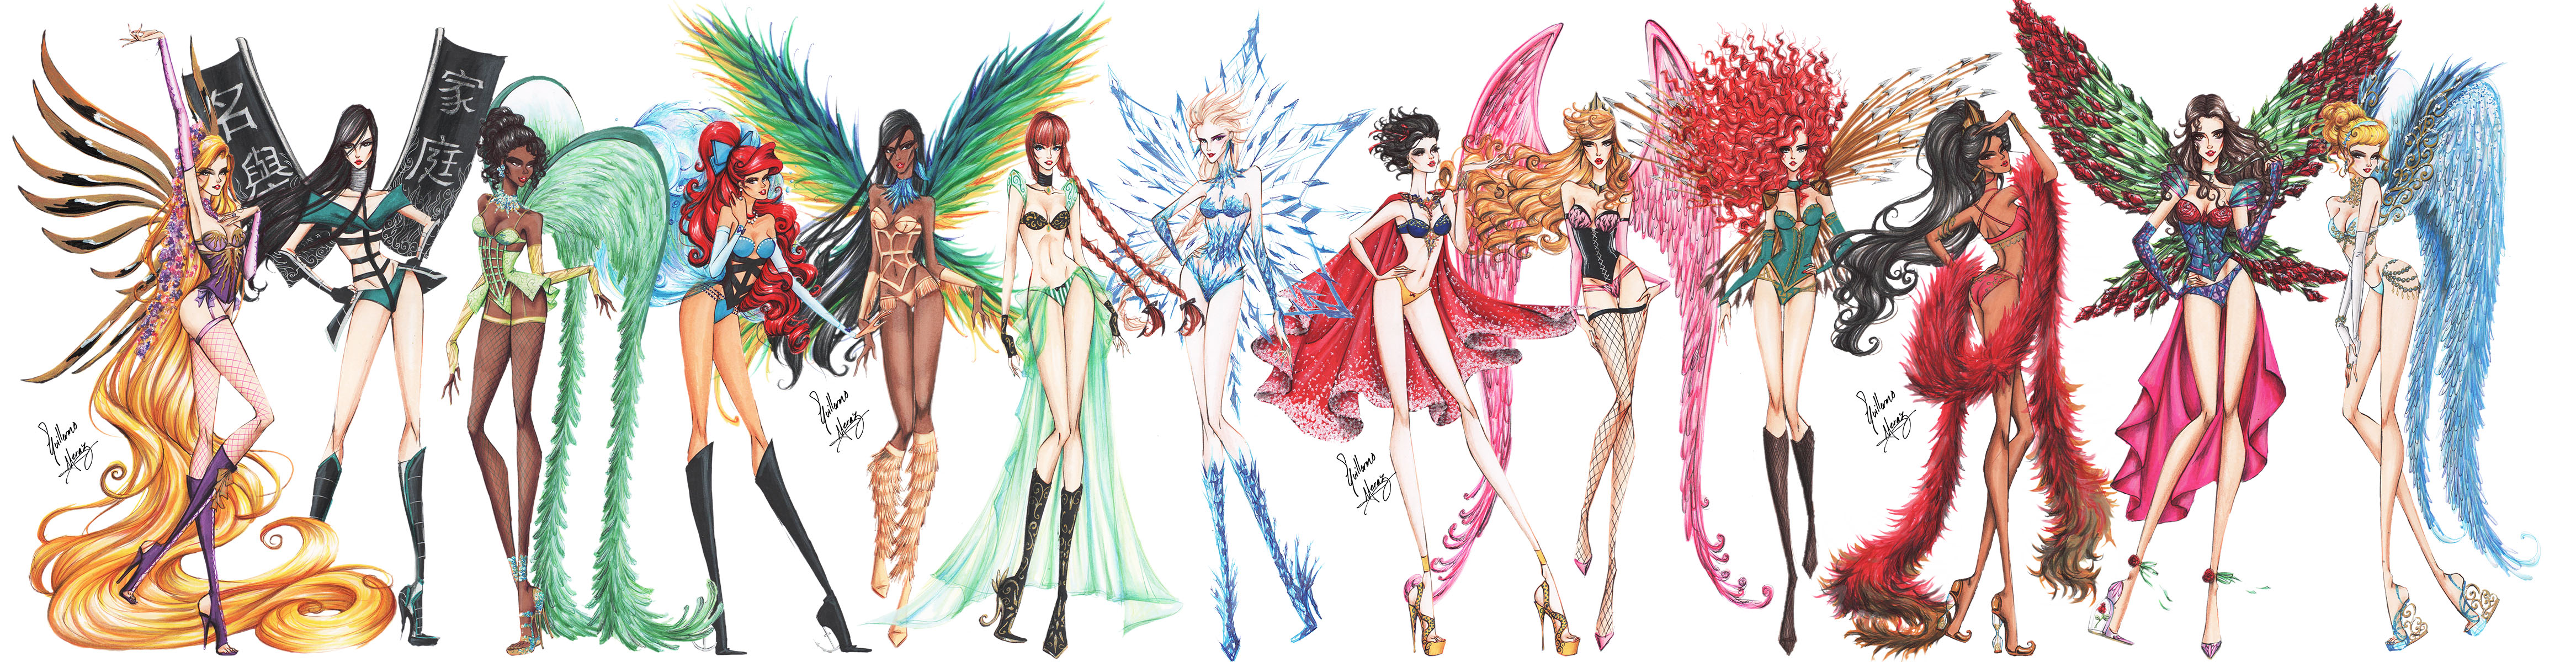 Disney Princesses Go Victorias Secret By Frozen winter prince On DeviantArt